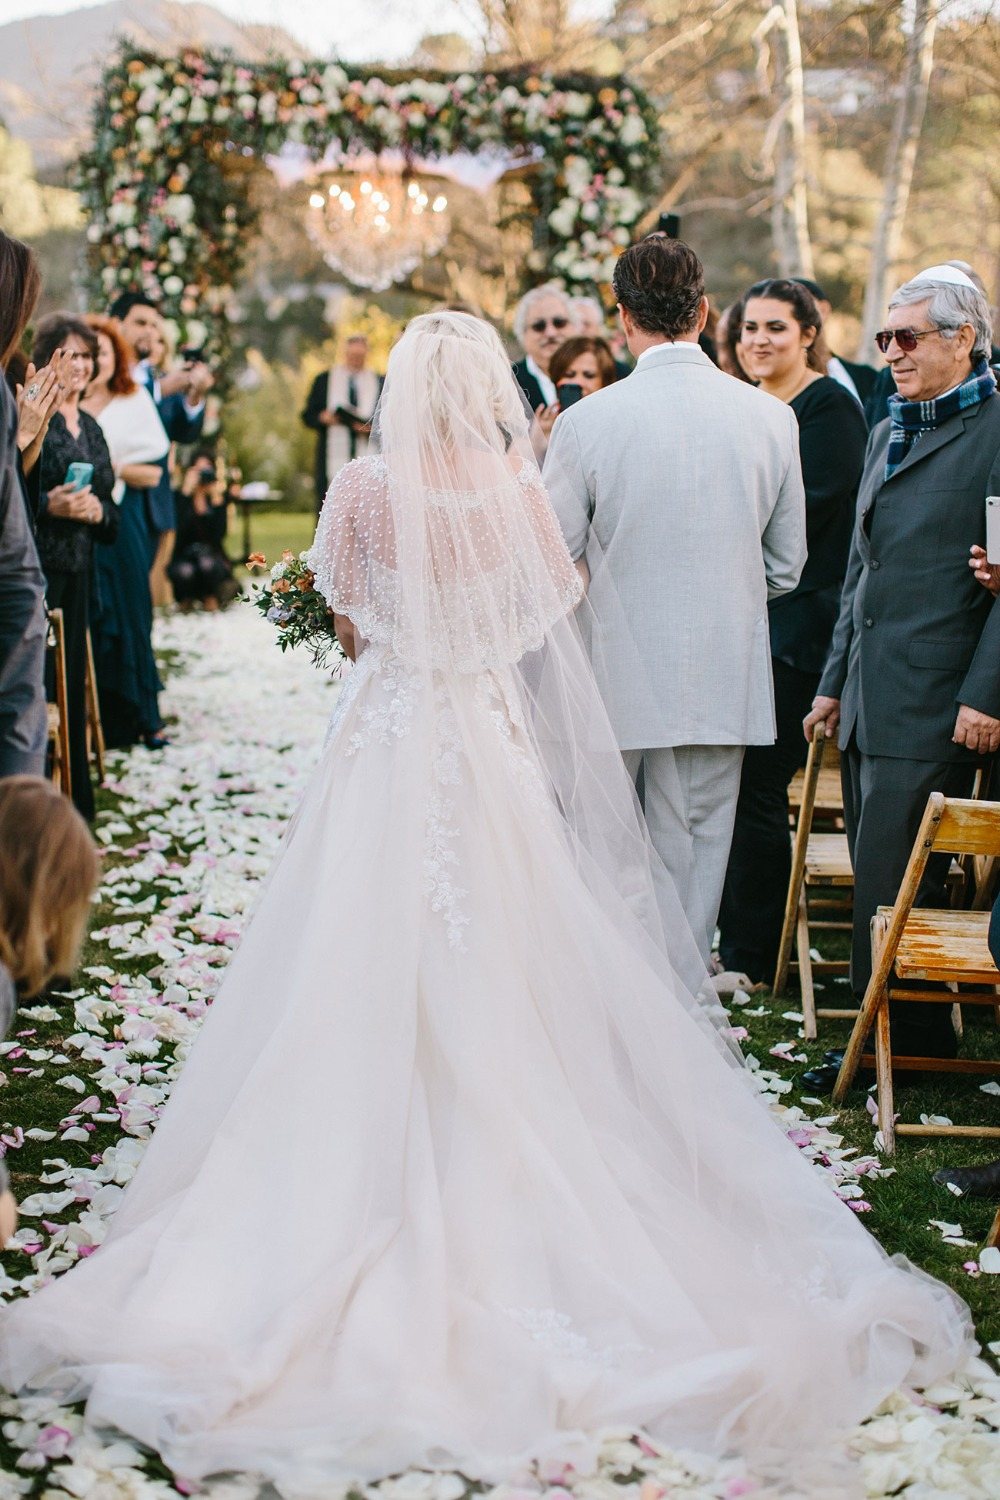 boho bride in Galia Lahav wedding dress